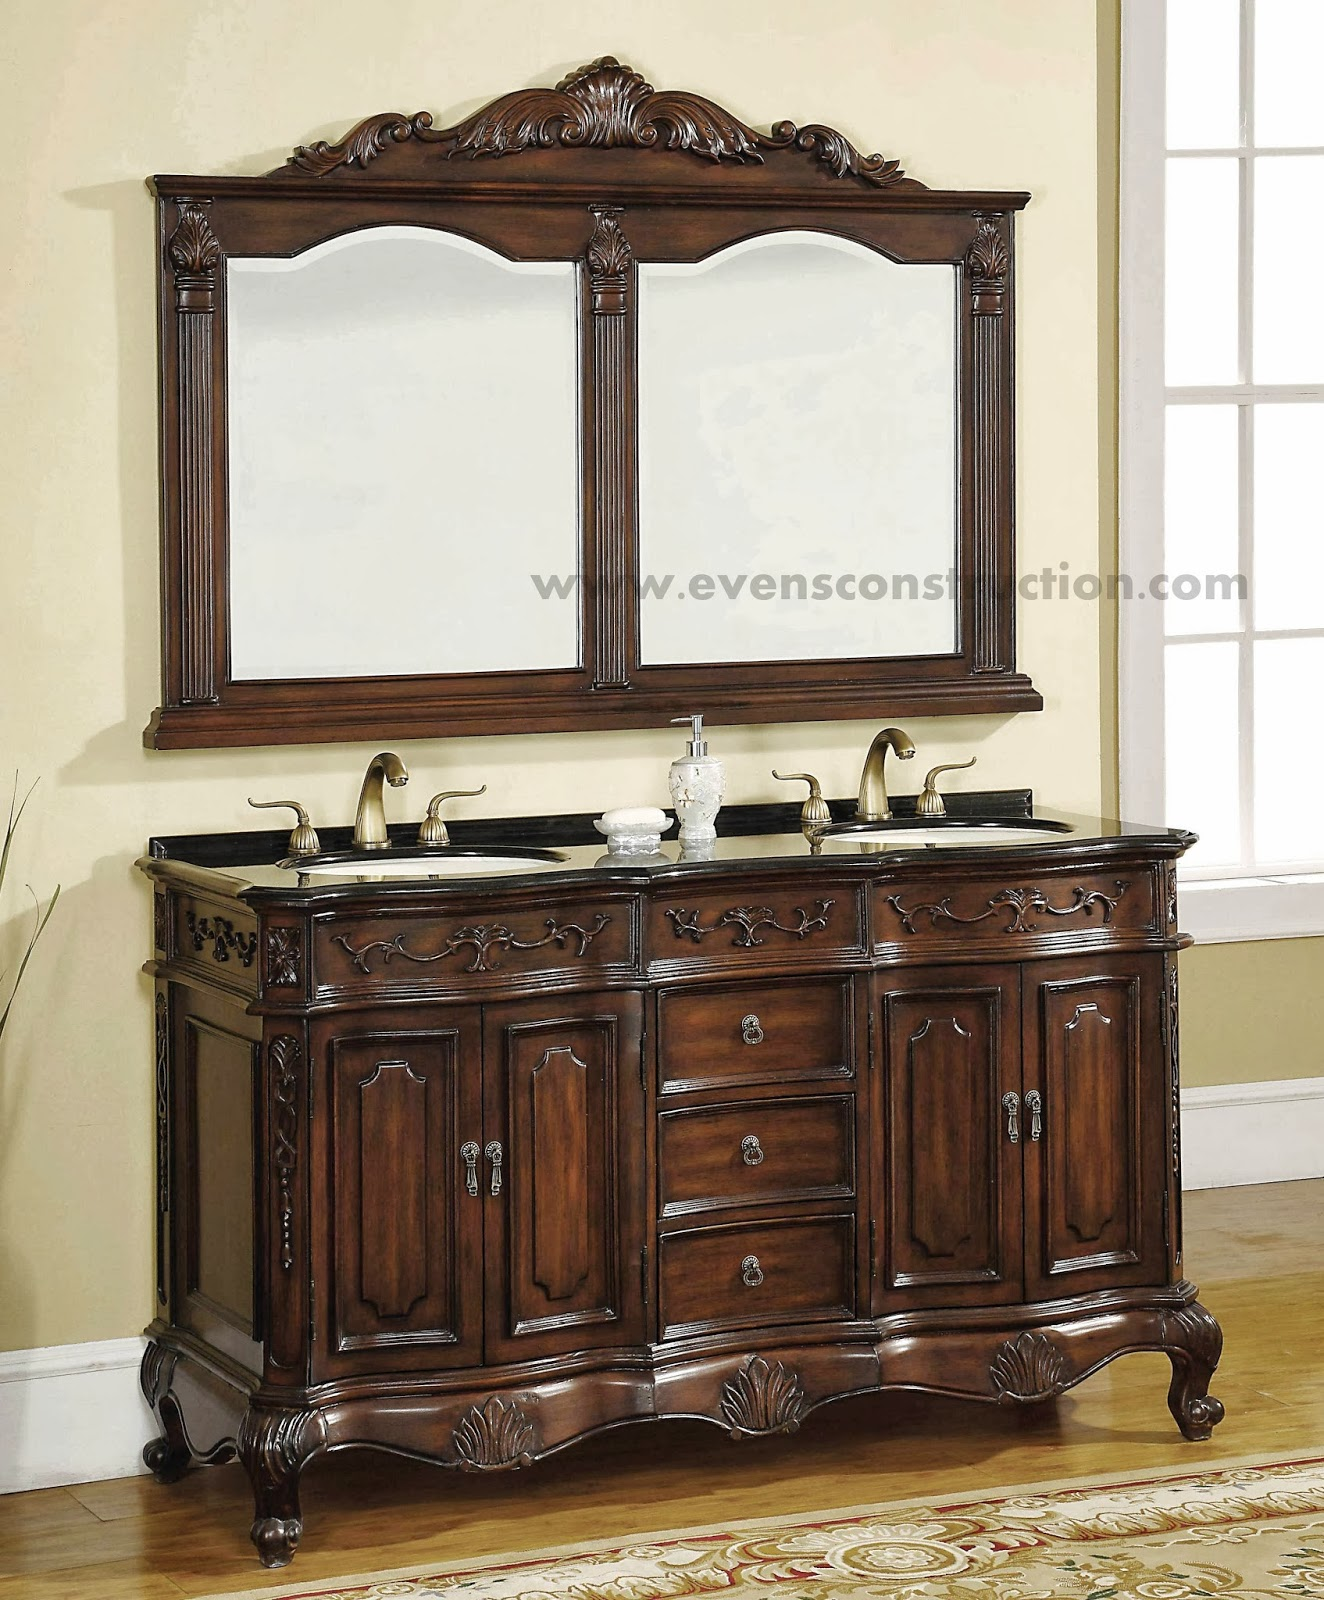 Decorative Bathroom Vanity Wall Mirrors : Evens construction pvt ltd bathroom mirrors gallery